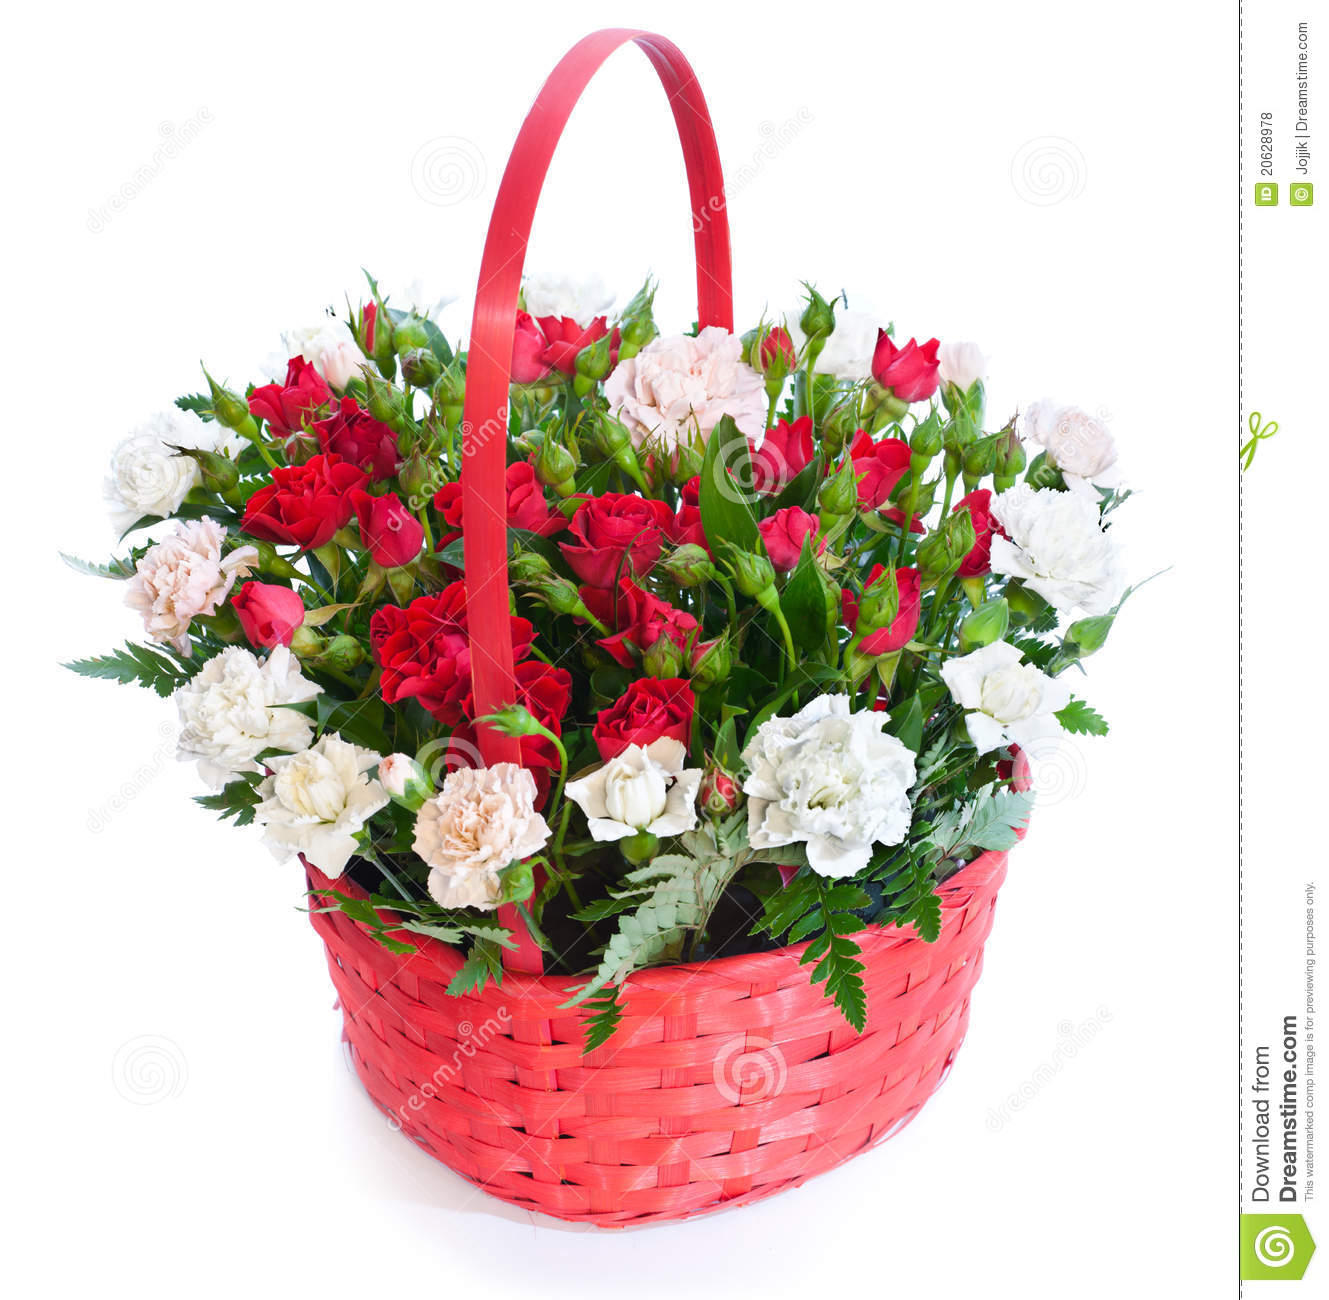 Flowers bouquet pictures free clipart transparent stock Bright Flower Bouquet In Basket Royalty Free Stock Photo - Image ... clipart transparent stock